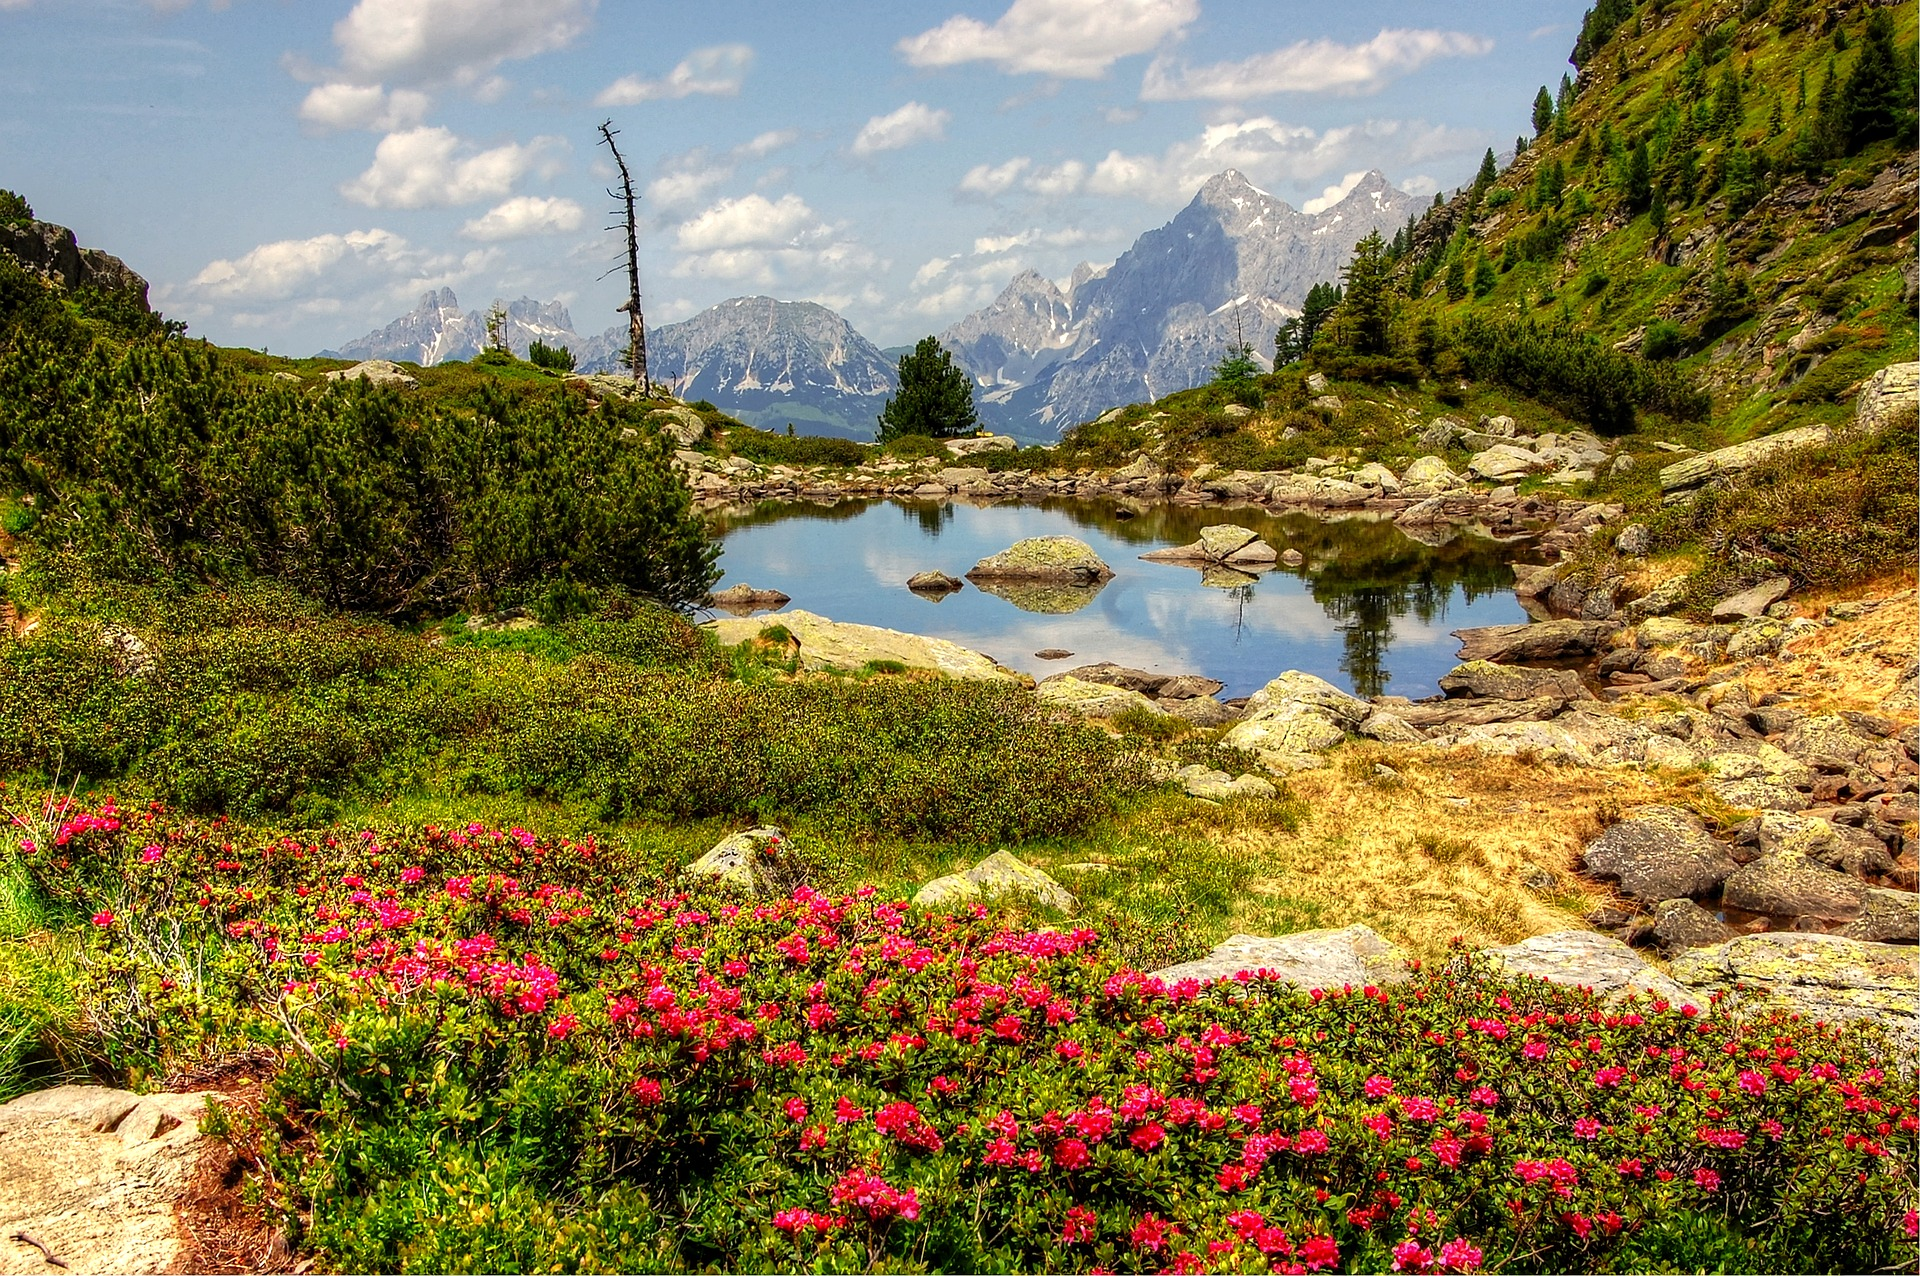 gasselsee-3516071_1920